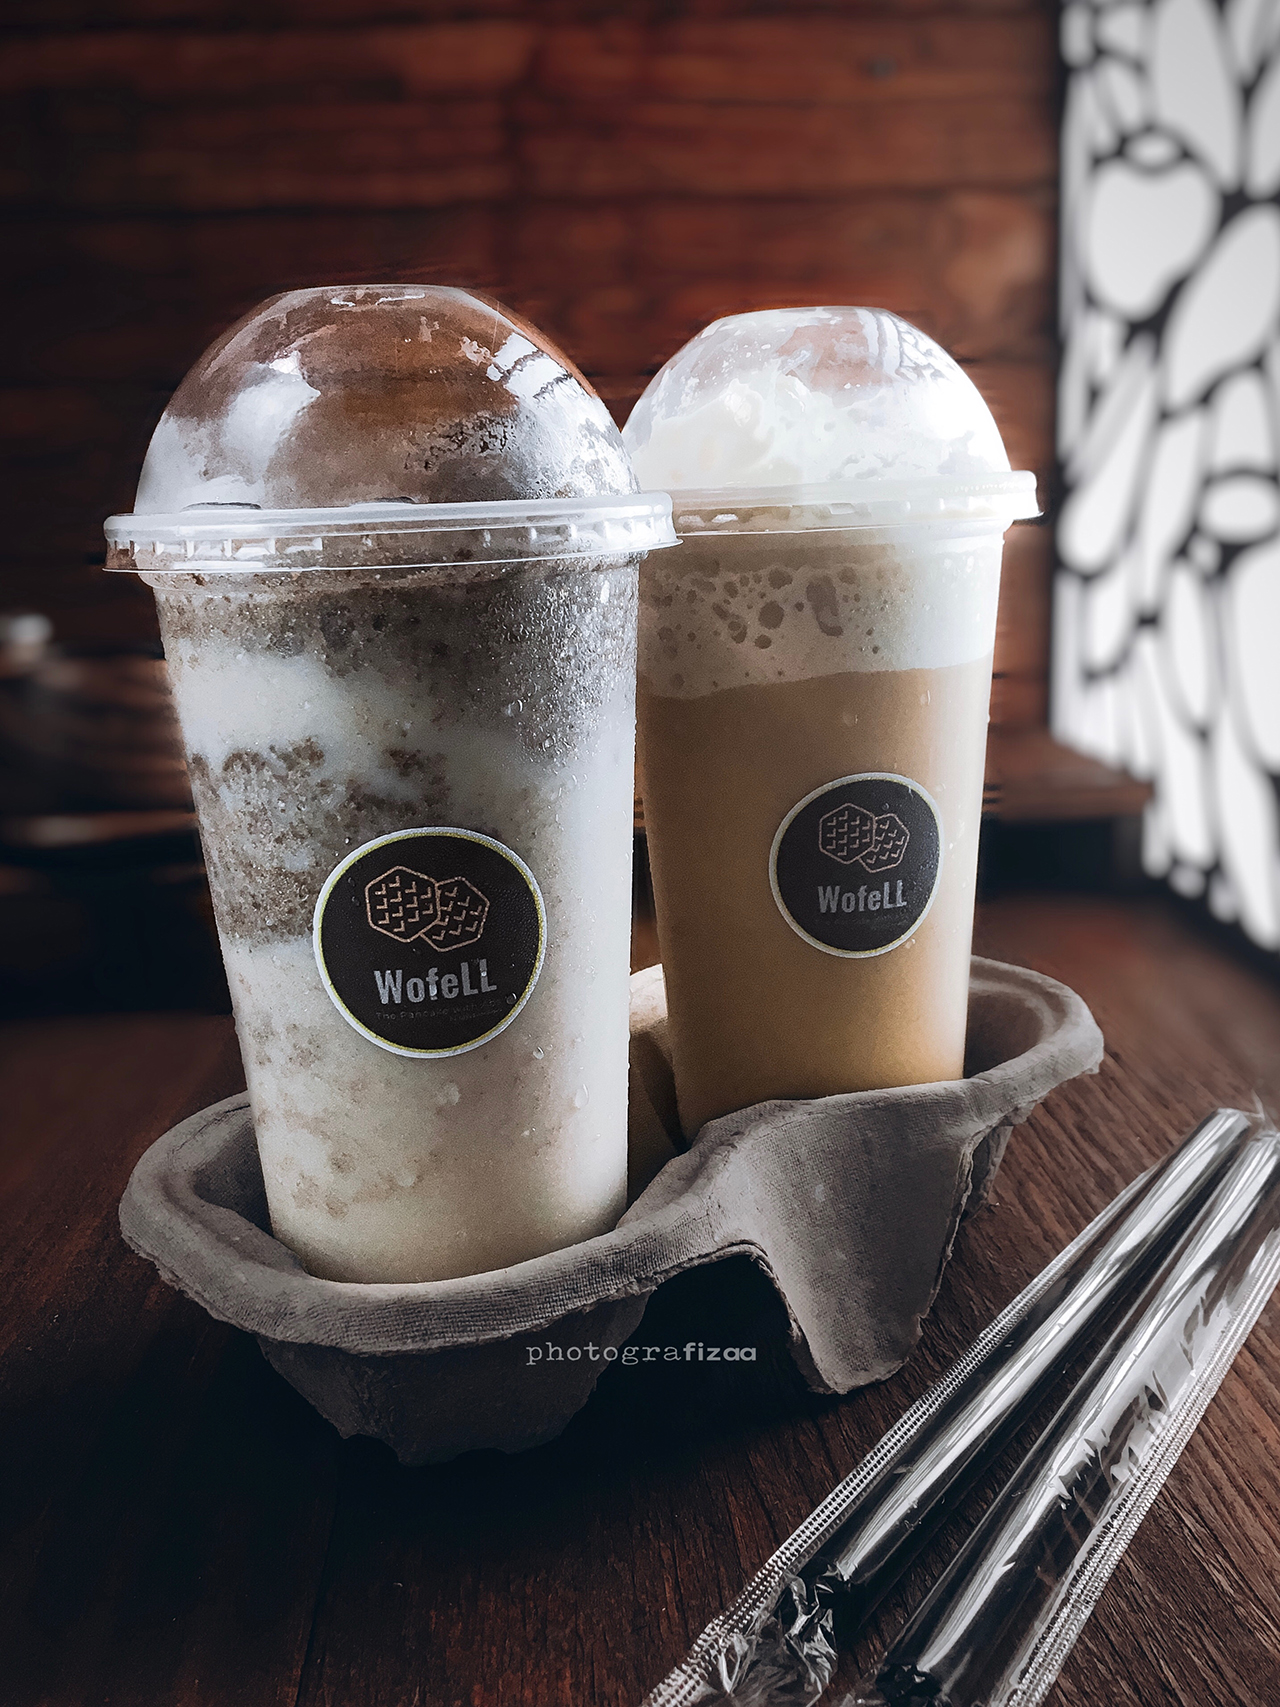 Ice Blended Wofell